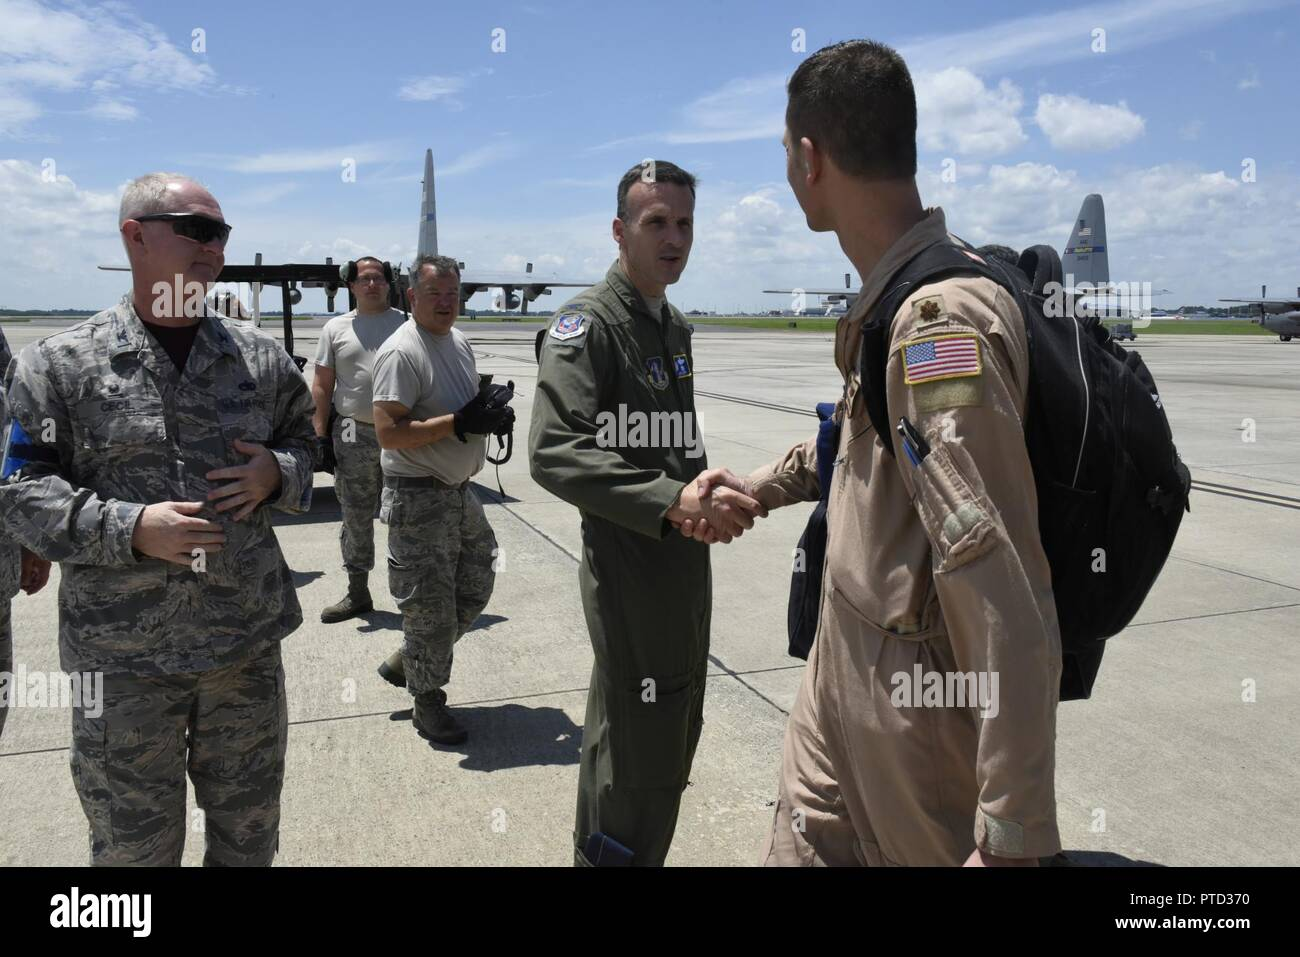 Photos of North Carolina Air National Guard Airmen returning from